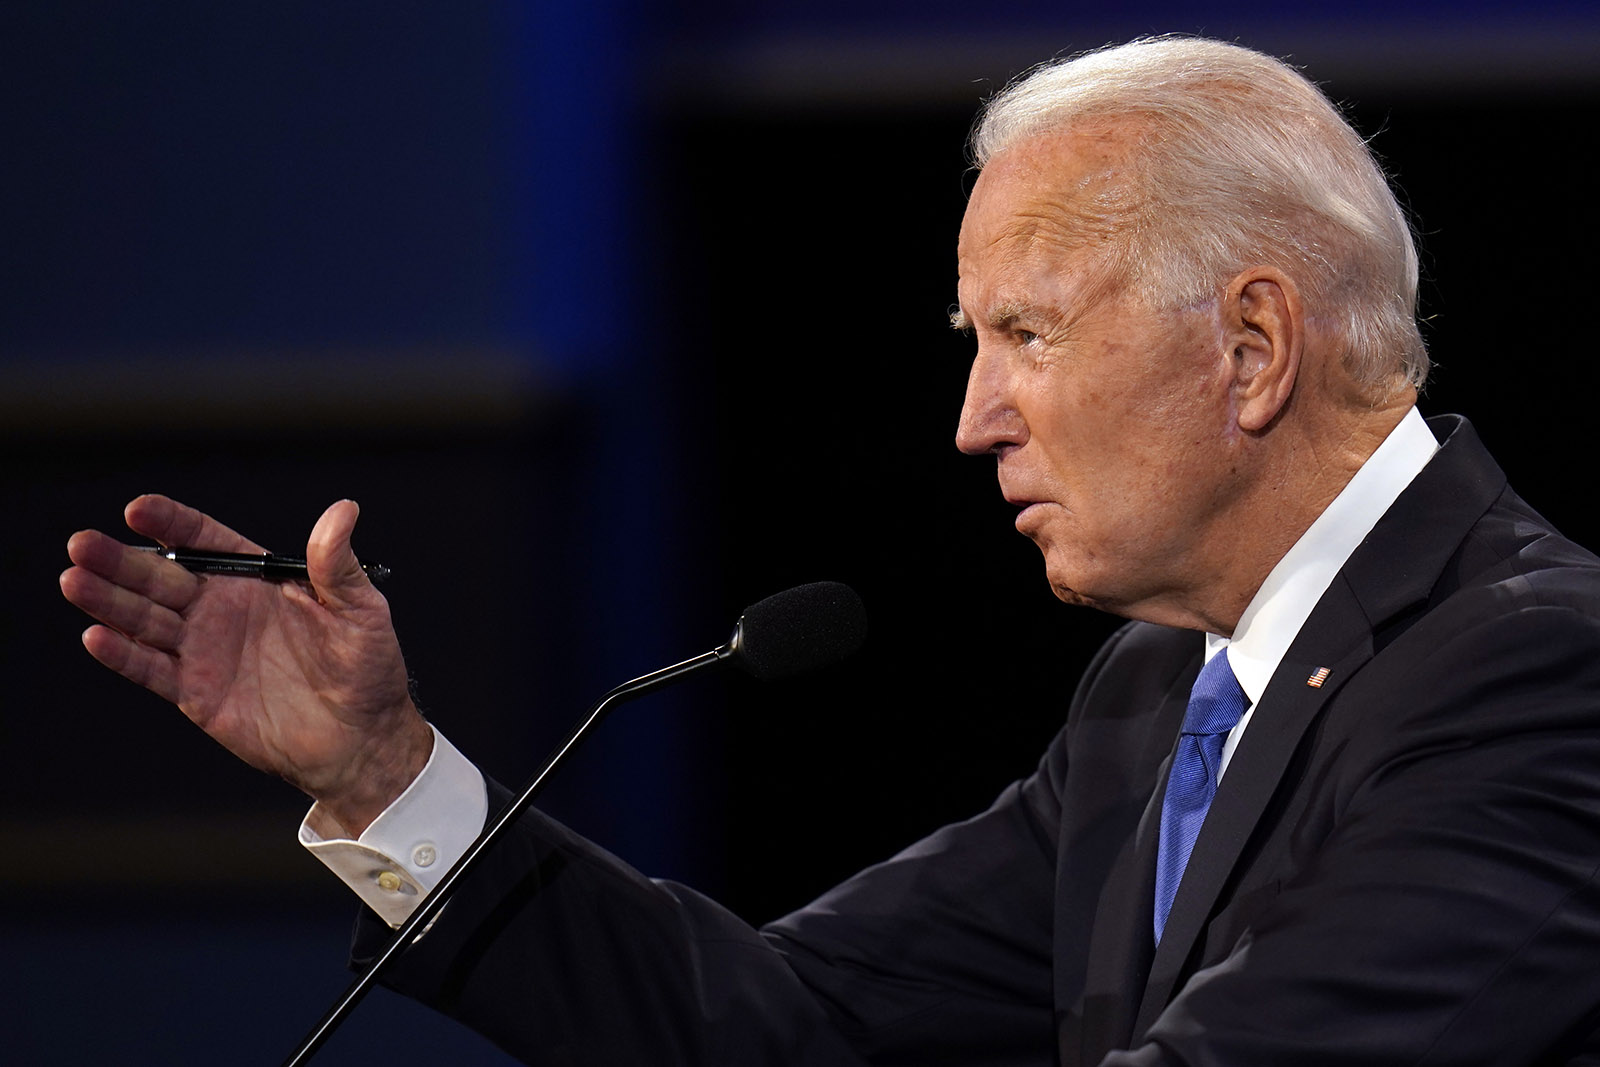 Democratic presidential candidate Joe Biden speaks during the second and final presidential debate on Thursday in Nashville.